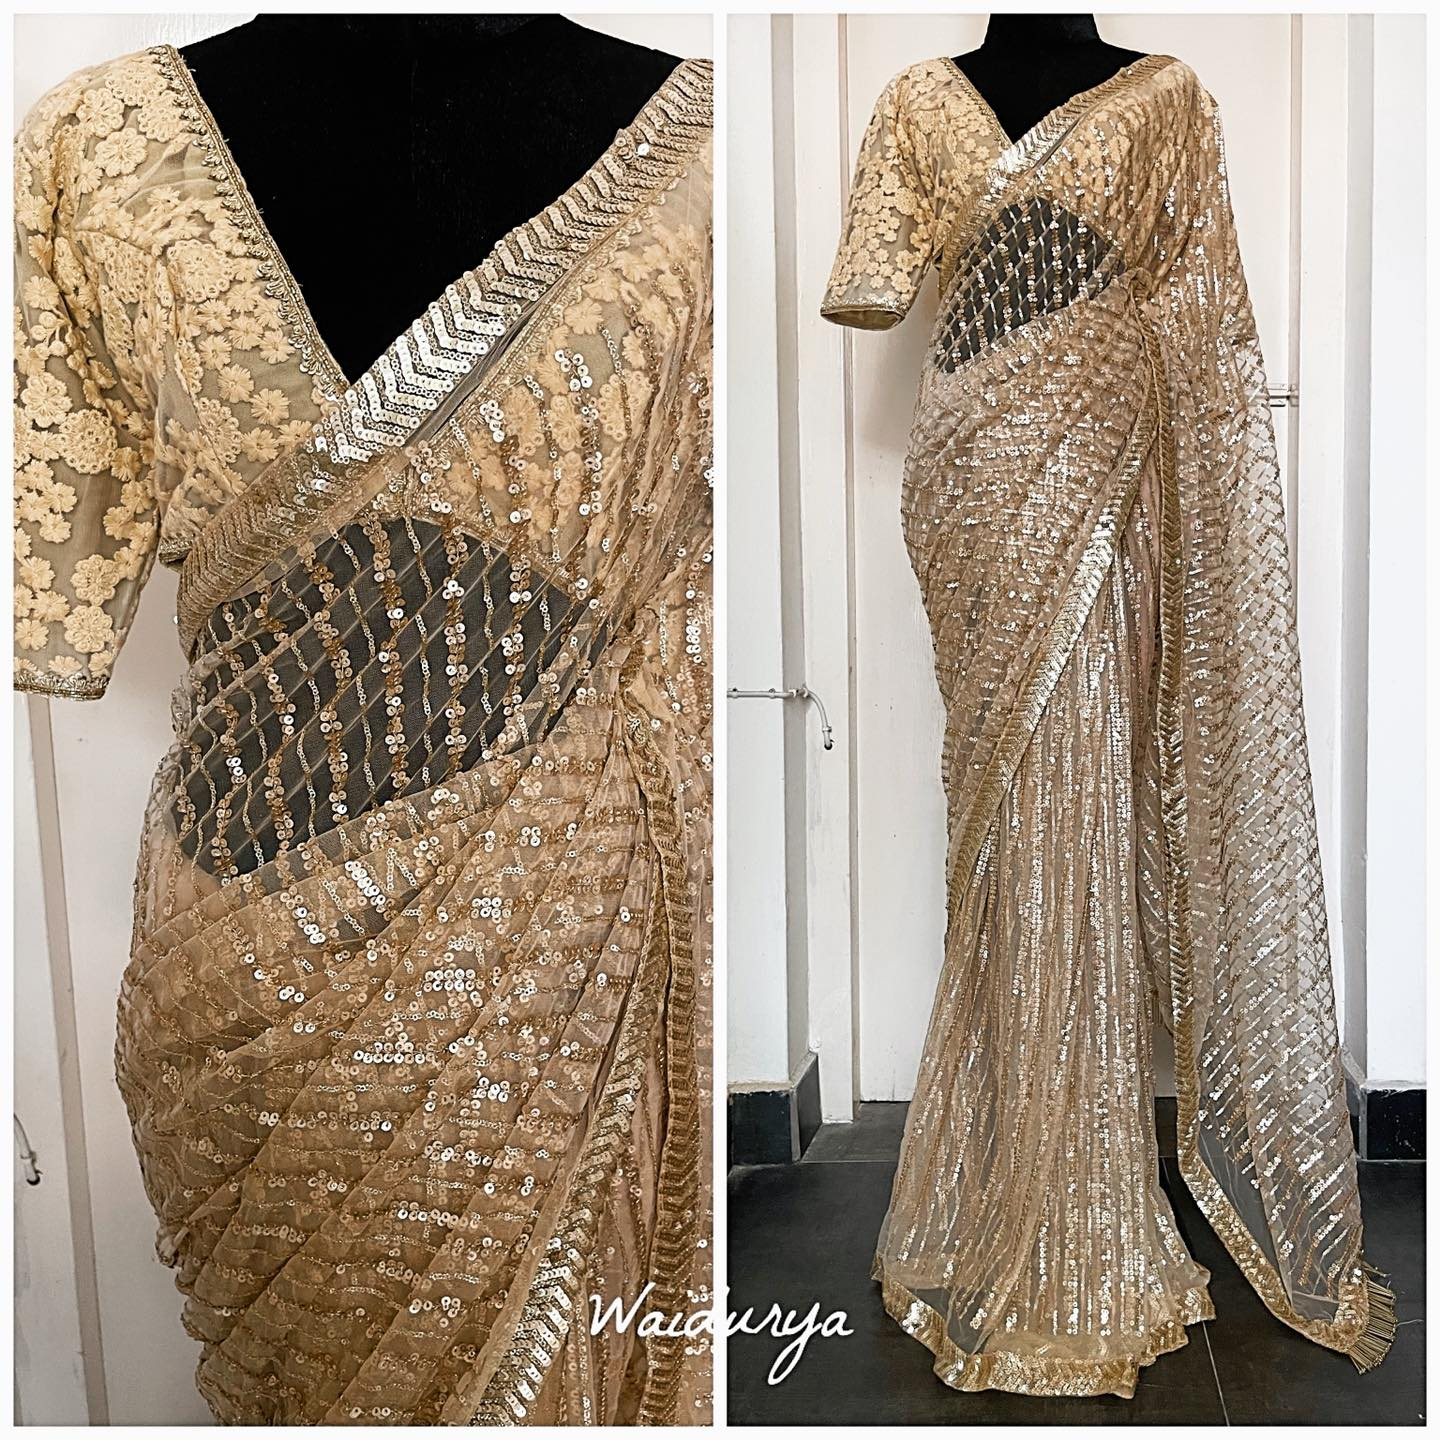 SONA. Sona is a full gold full sequin embroidered full glam beauty! this soft net sari is fully embroidered in a high quality sequin in a stripe design all over. The border is a sequin embroidered one in a chevron design making it just that much more rich. The handmade gold glass bead tassels at the pallu edge finish the look perfectly.  The blouse is a creamy ivory thread embroidered one in a floral design to add depth and textural variation to the whole look. 2021-09-21